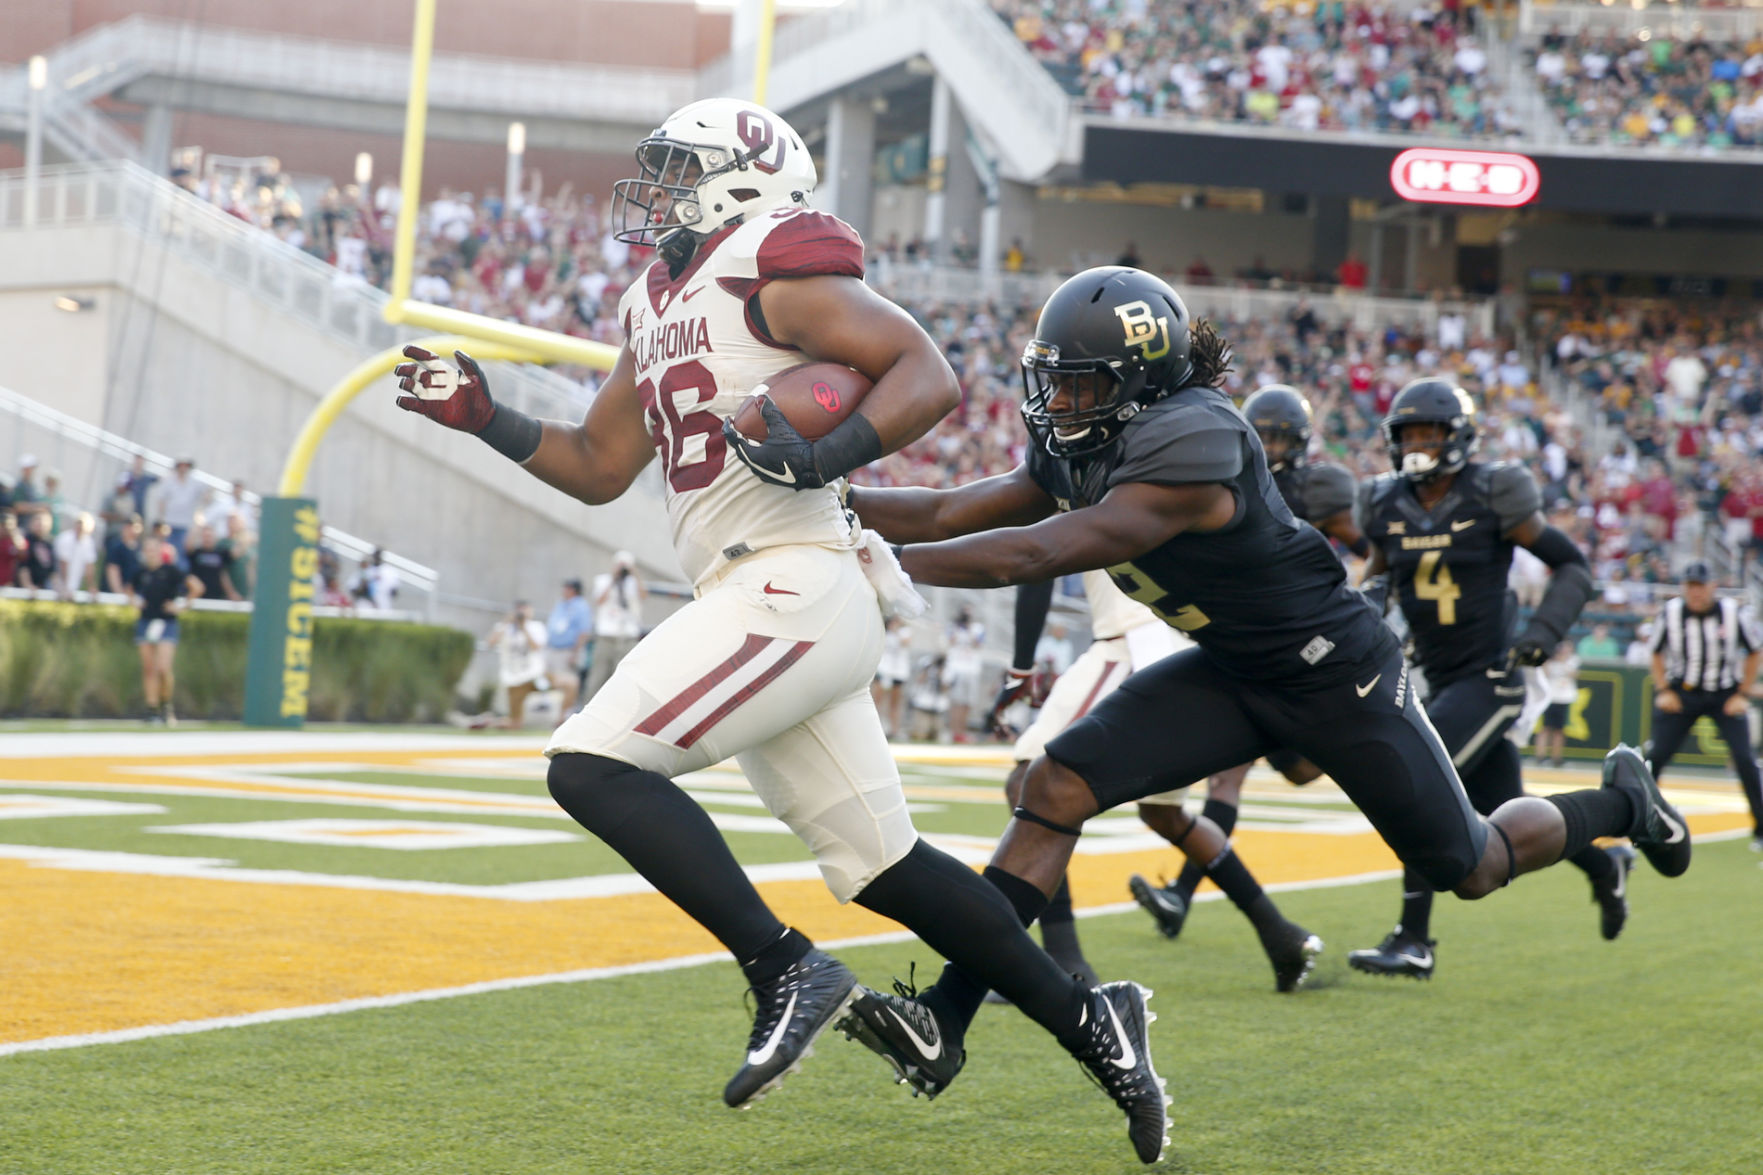 Oklahoma hit by Iowa State in NCAA football upset